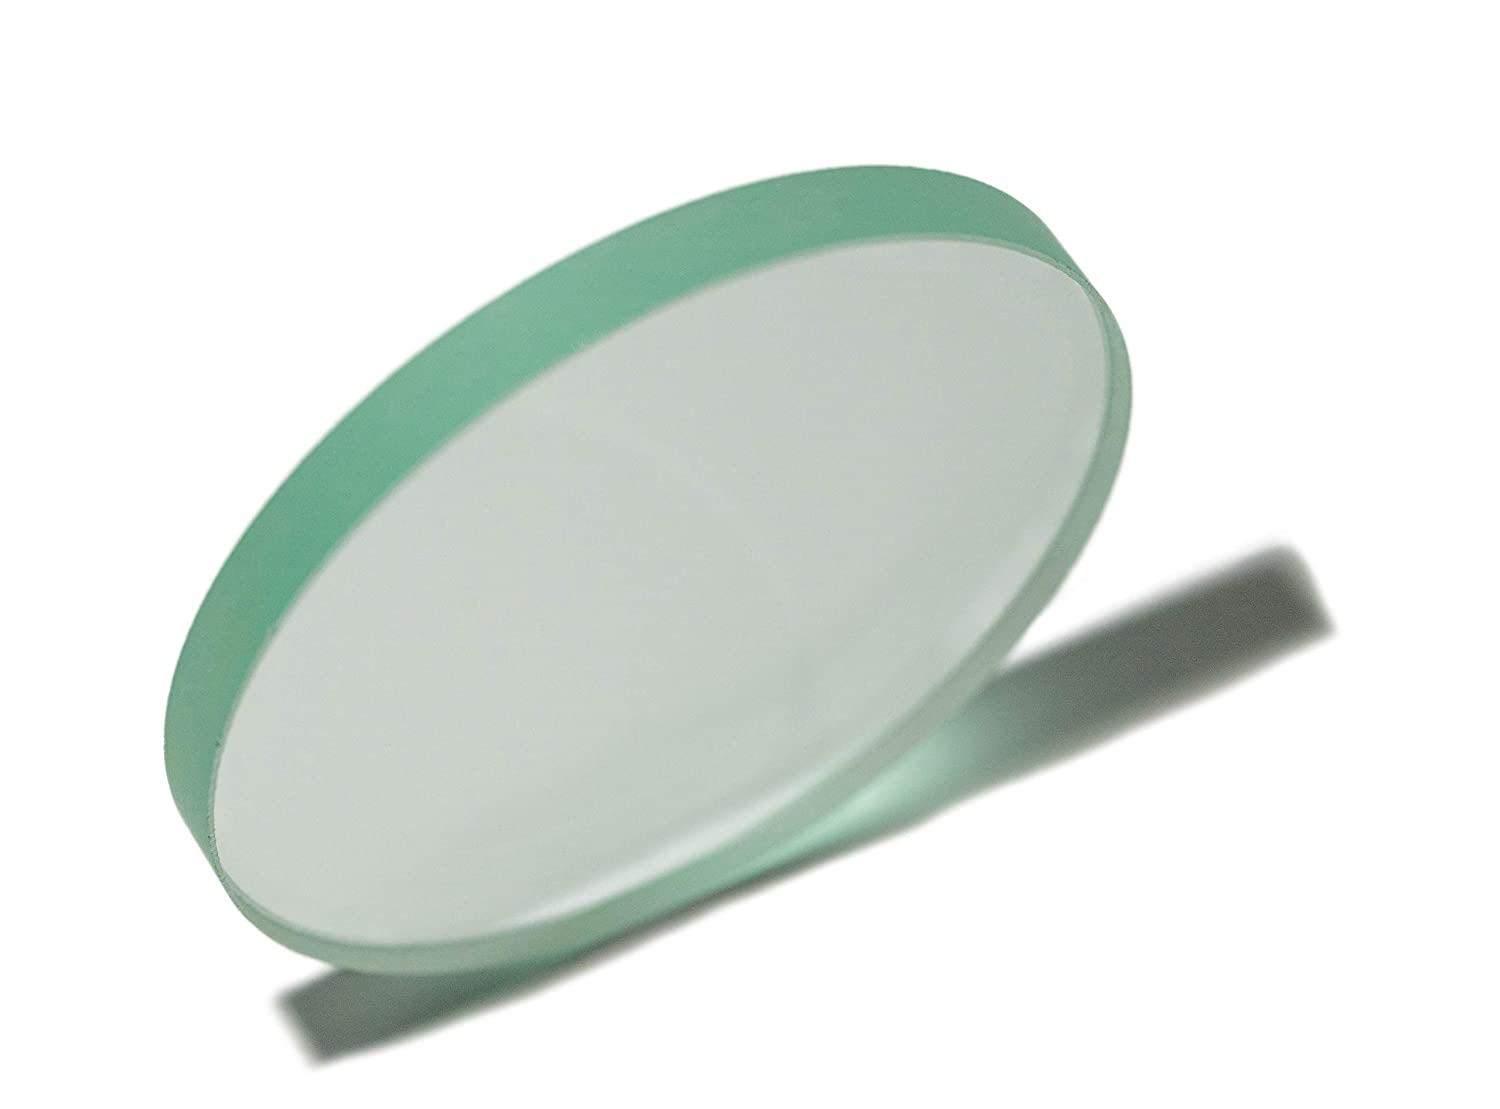 """Thickness 0.4/"""" Diameter - Spin Top Glass Base Surface Double Concave Fused Silica Glass Optical Lens Bruce Charles Designs Spinning Top Base 3.93/"""" 10mm 30cm//300 mm Focal Length 100 mm"""